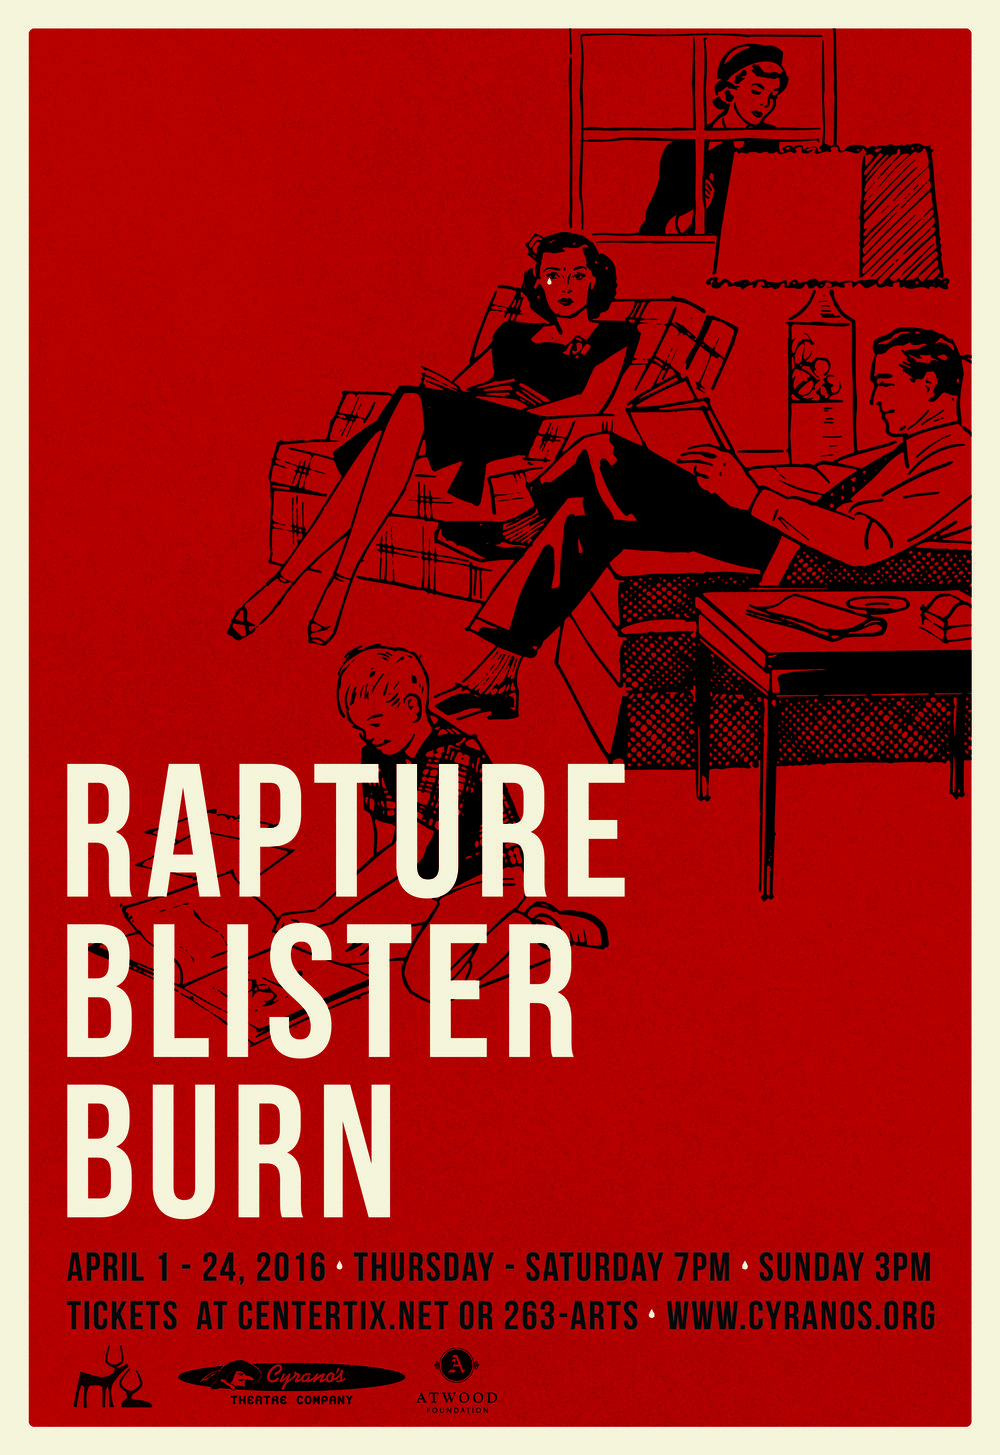 RaptureBlisterBurn_Poster_v2_3.8.jpg